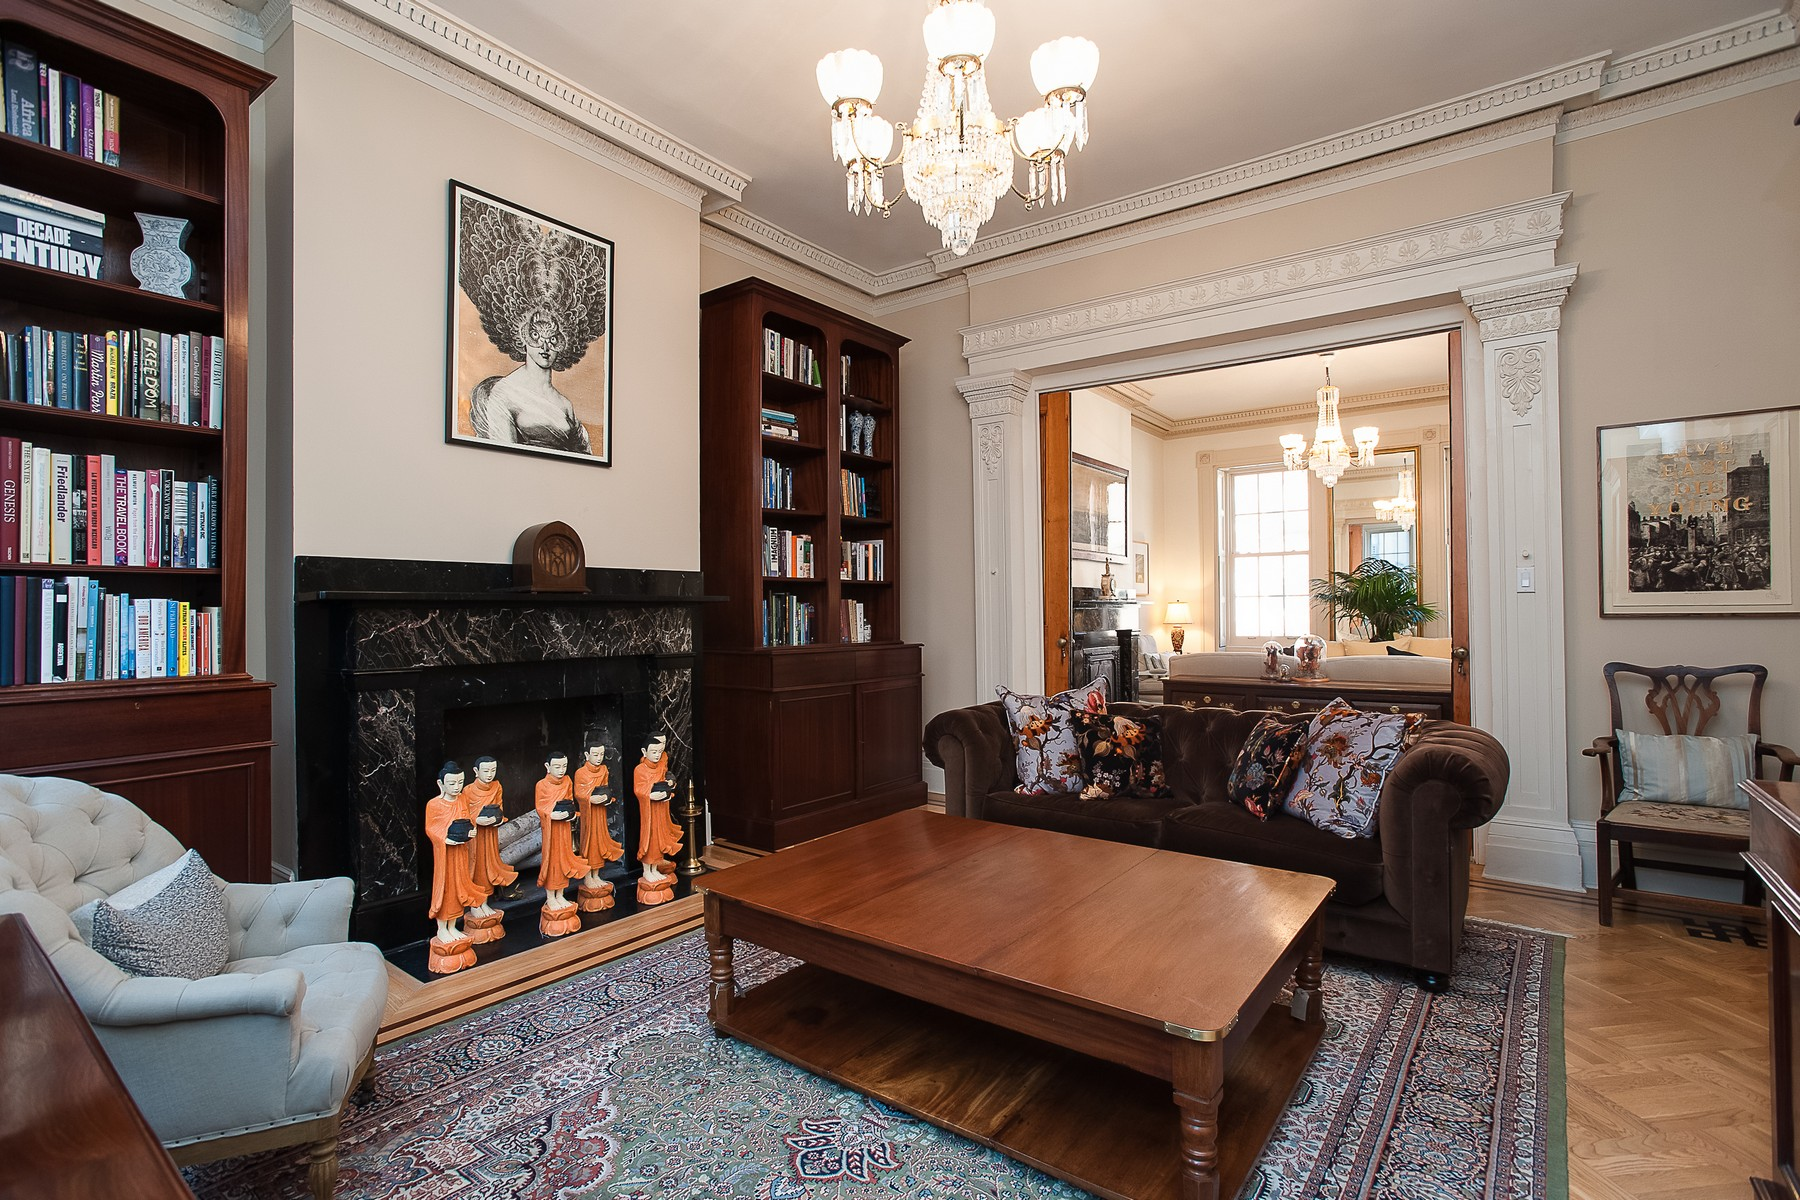 联栋屋 为 销售 在 Historic 1837 Paulus Hook Greek Revival Townhouse 103 Grand Street 泽西城, 新泽西州 07302 美国